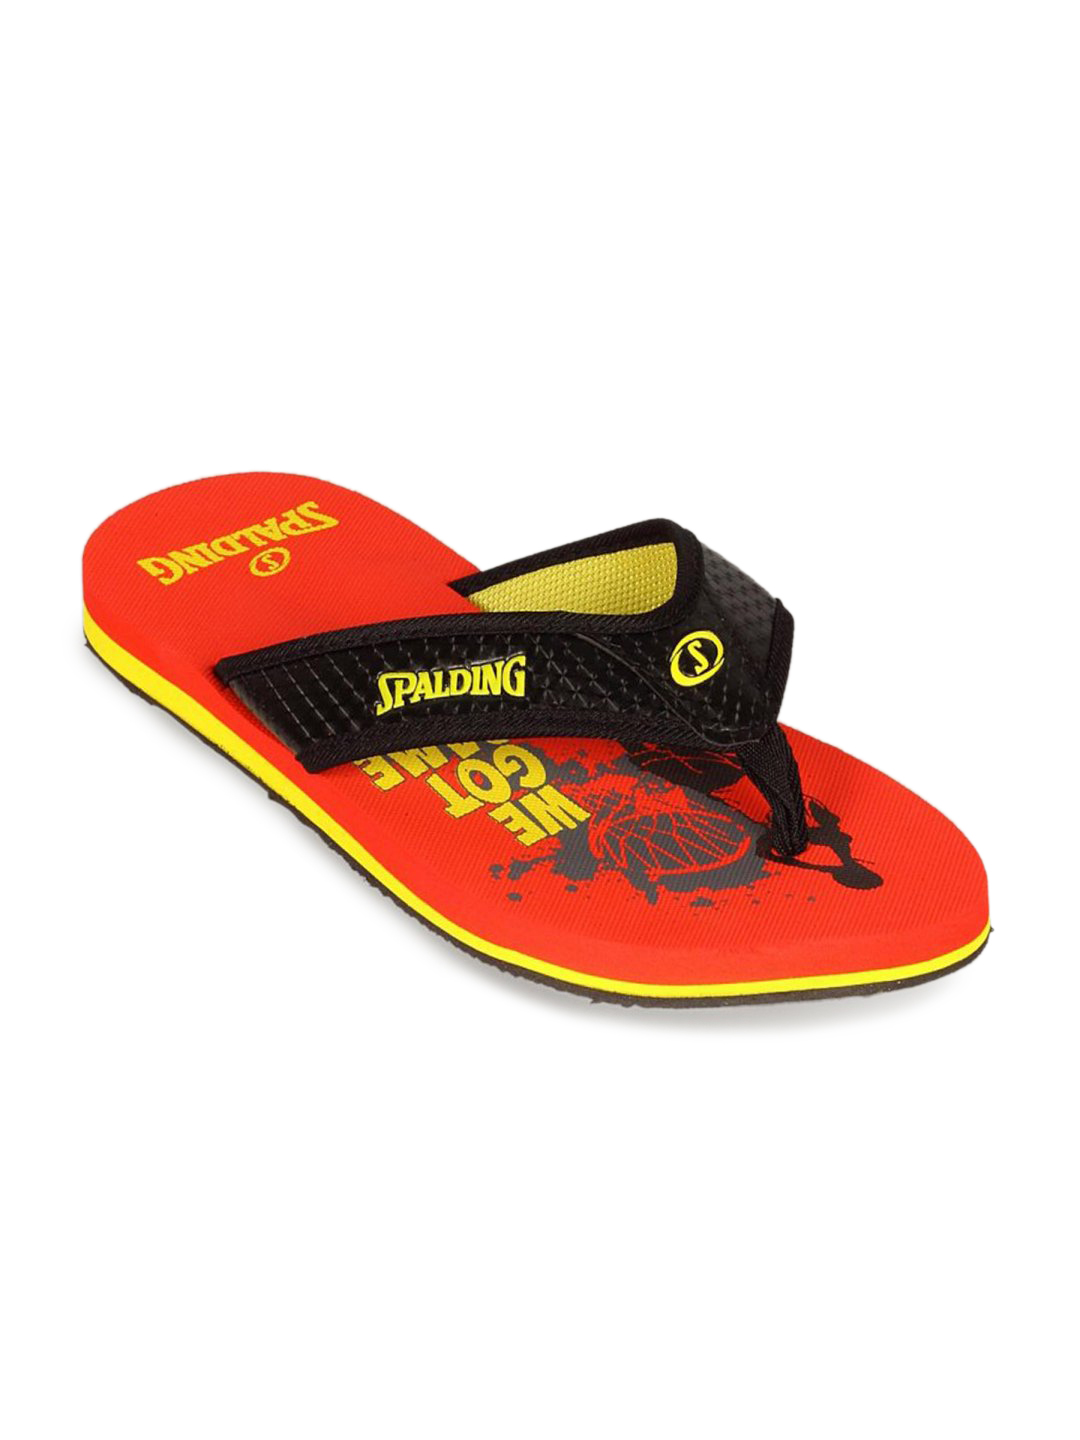 Spalding Men Red Flip Flops